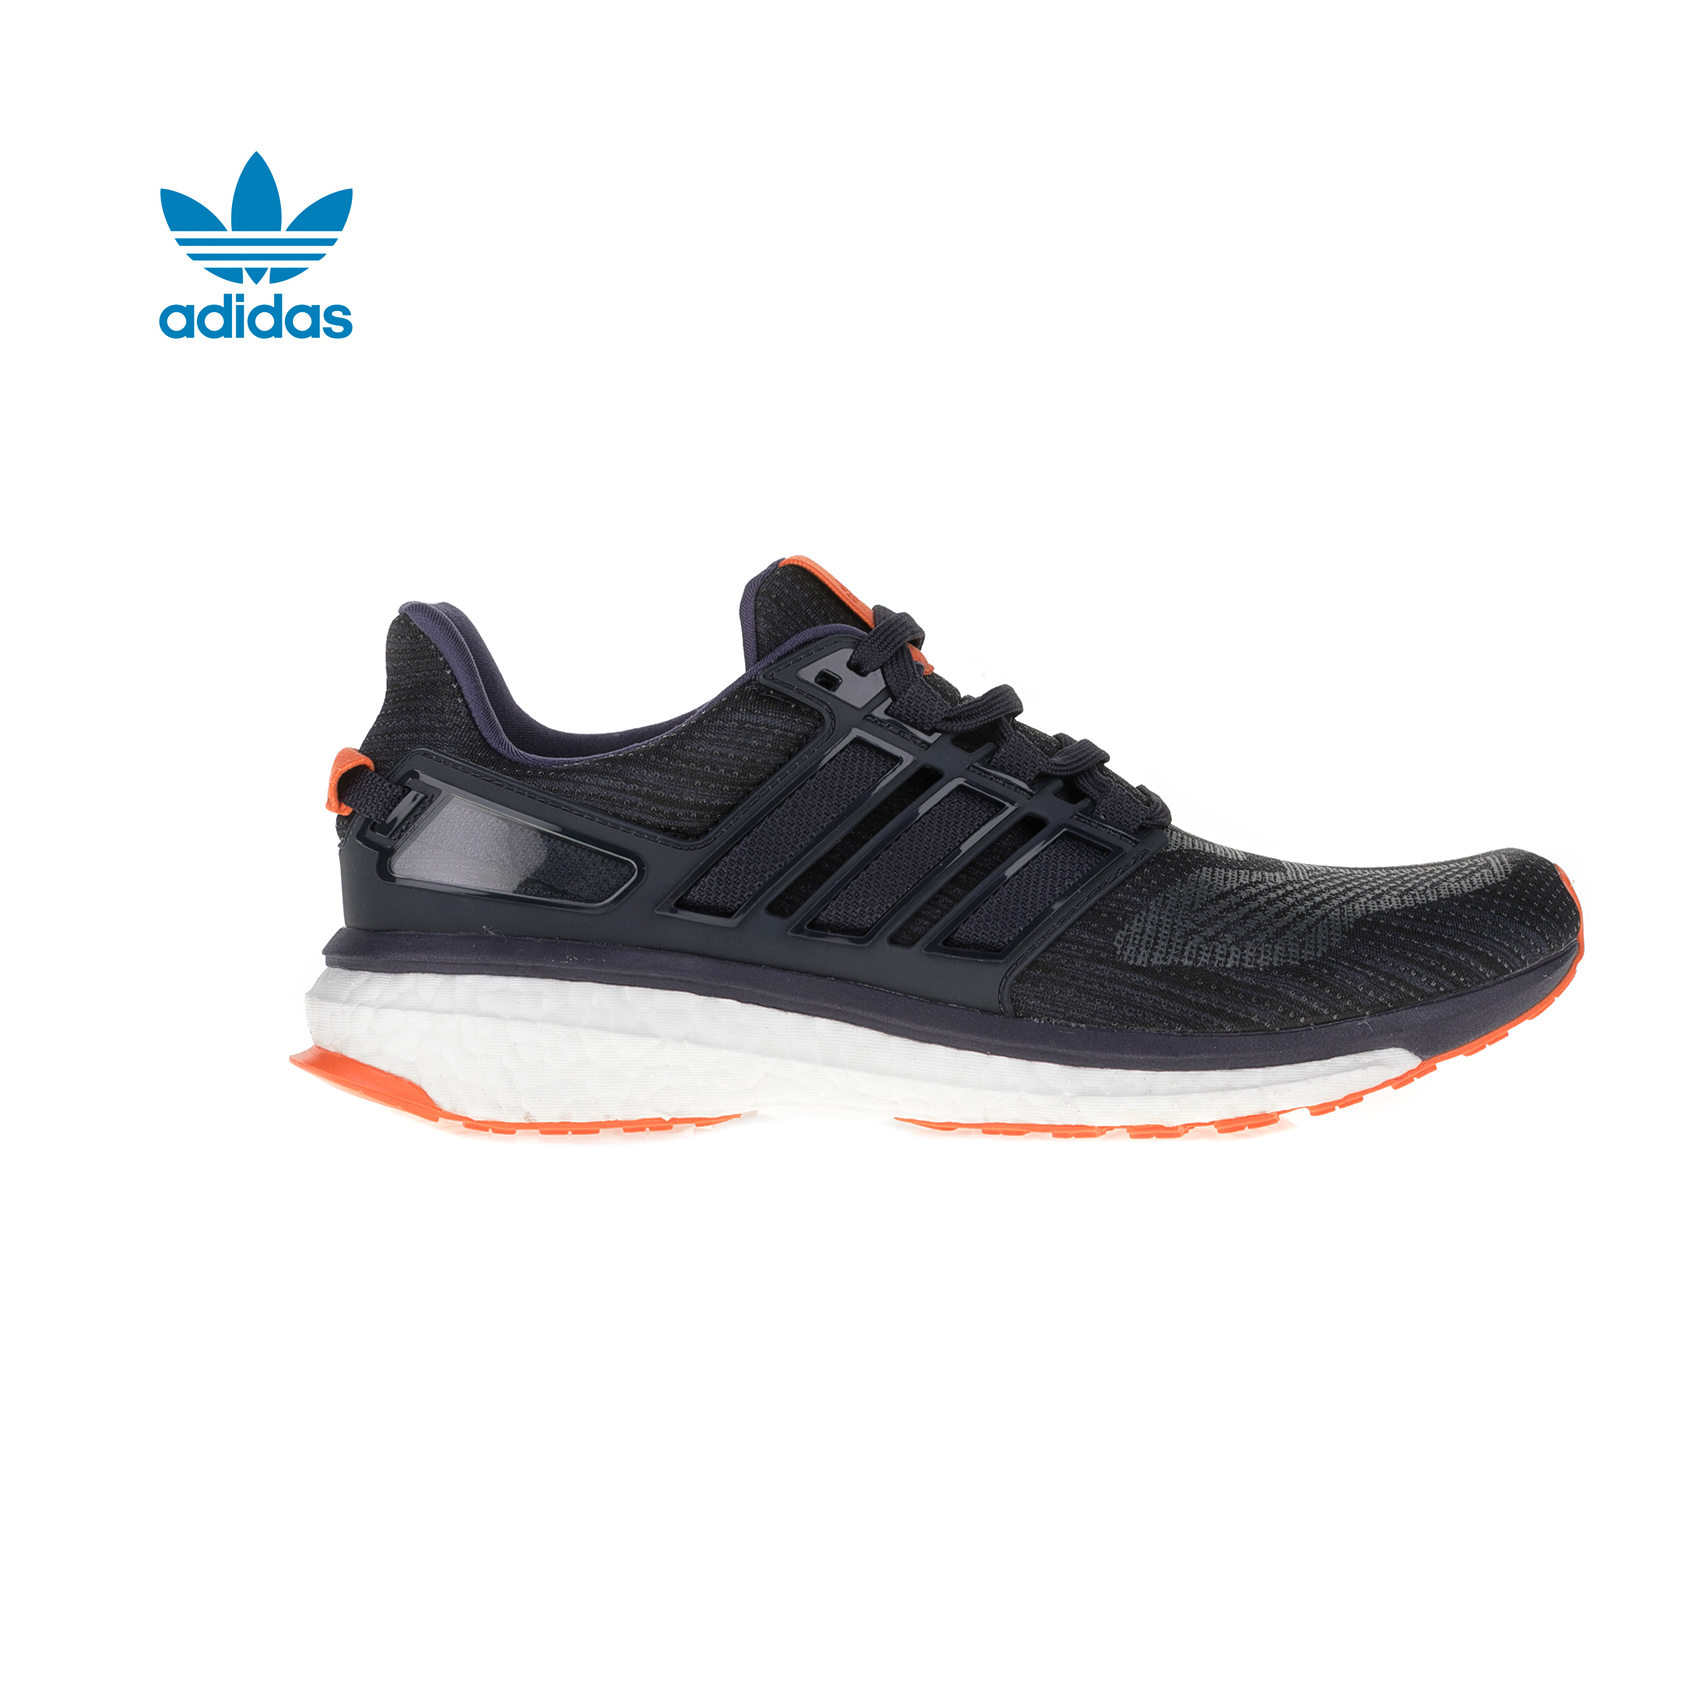 ADIDAS – BB5786 energy boost 3 m RUNNING ΥΠΟΔΗΜΑ